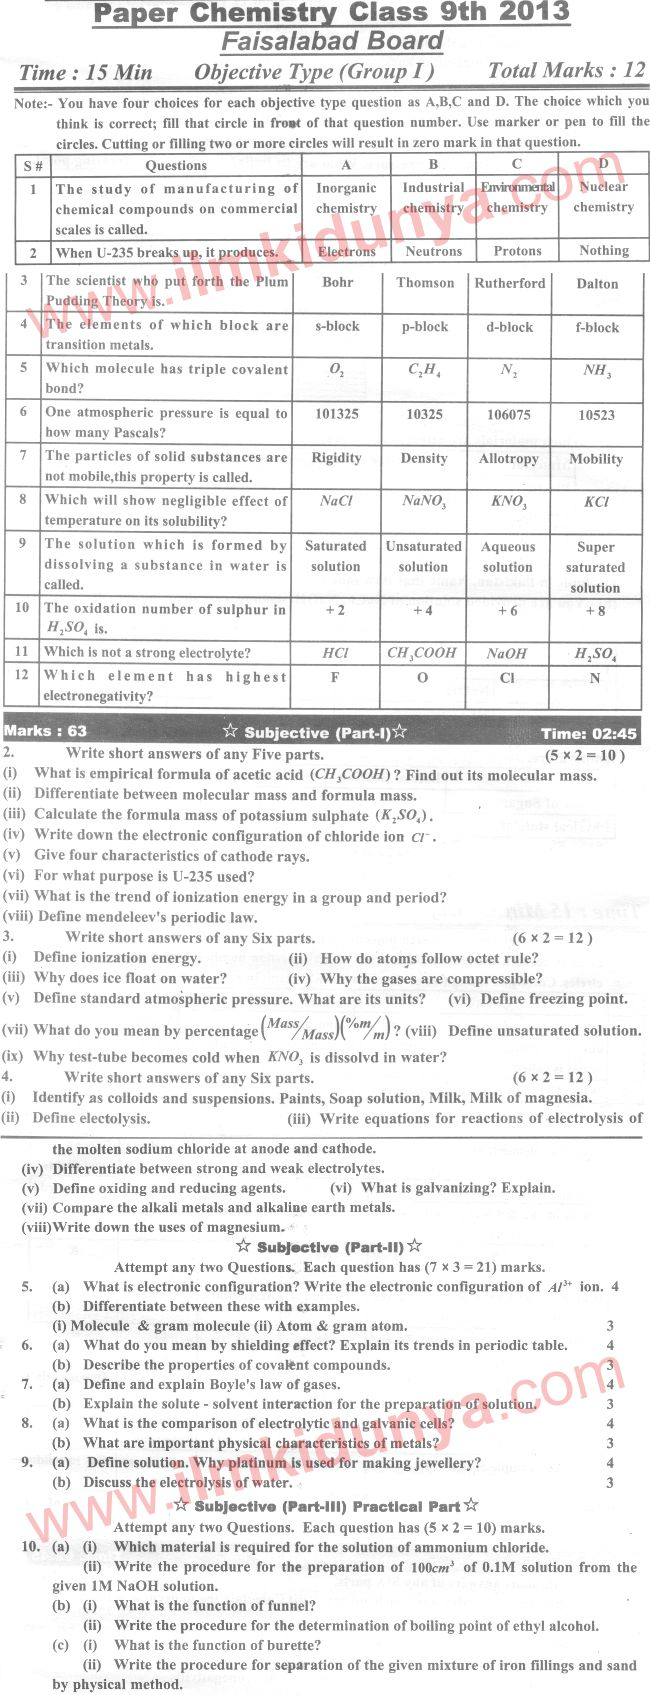 Past Papers 2013 Faisalabad Board 9th Class Chemistry